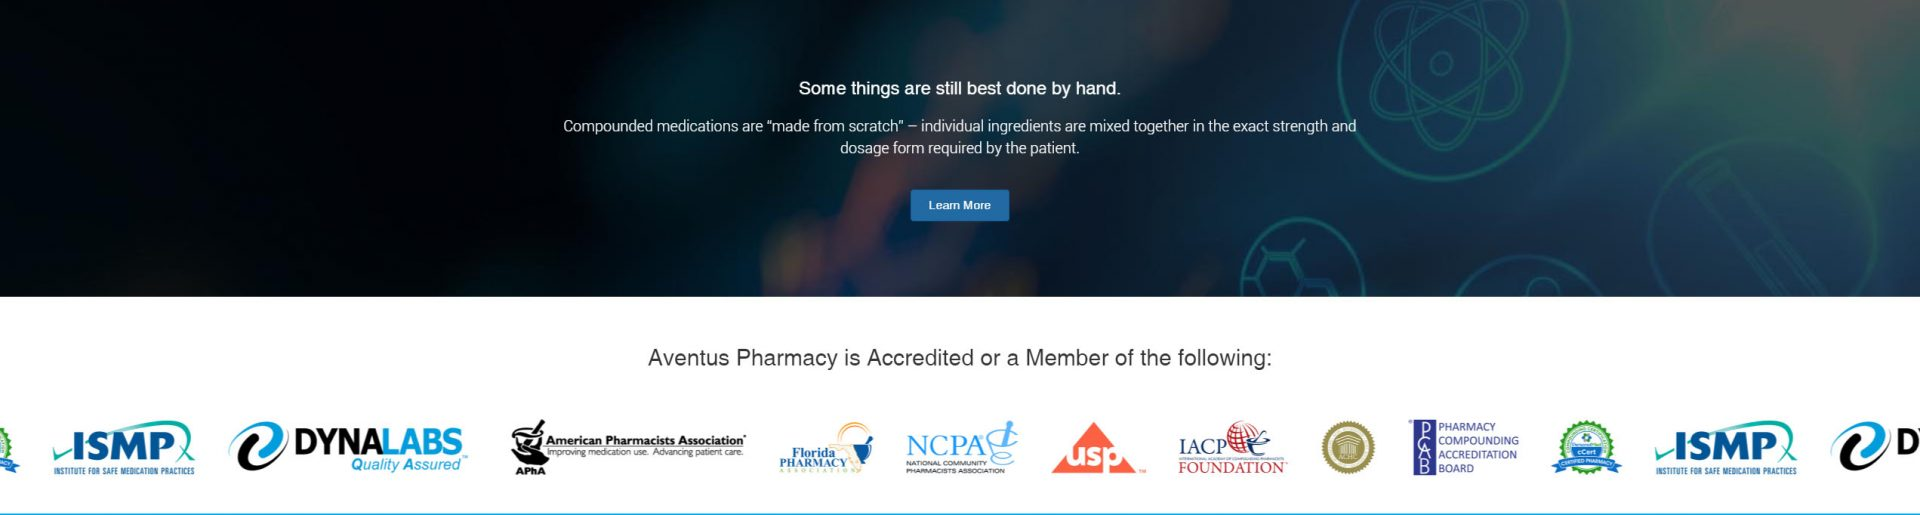 pharmacy home page design print screen 2